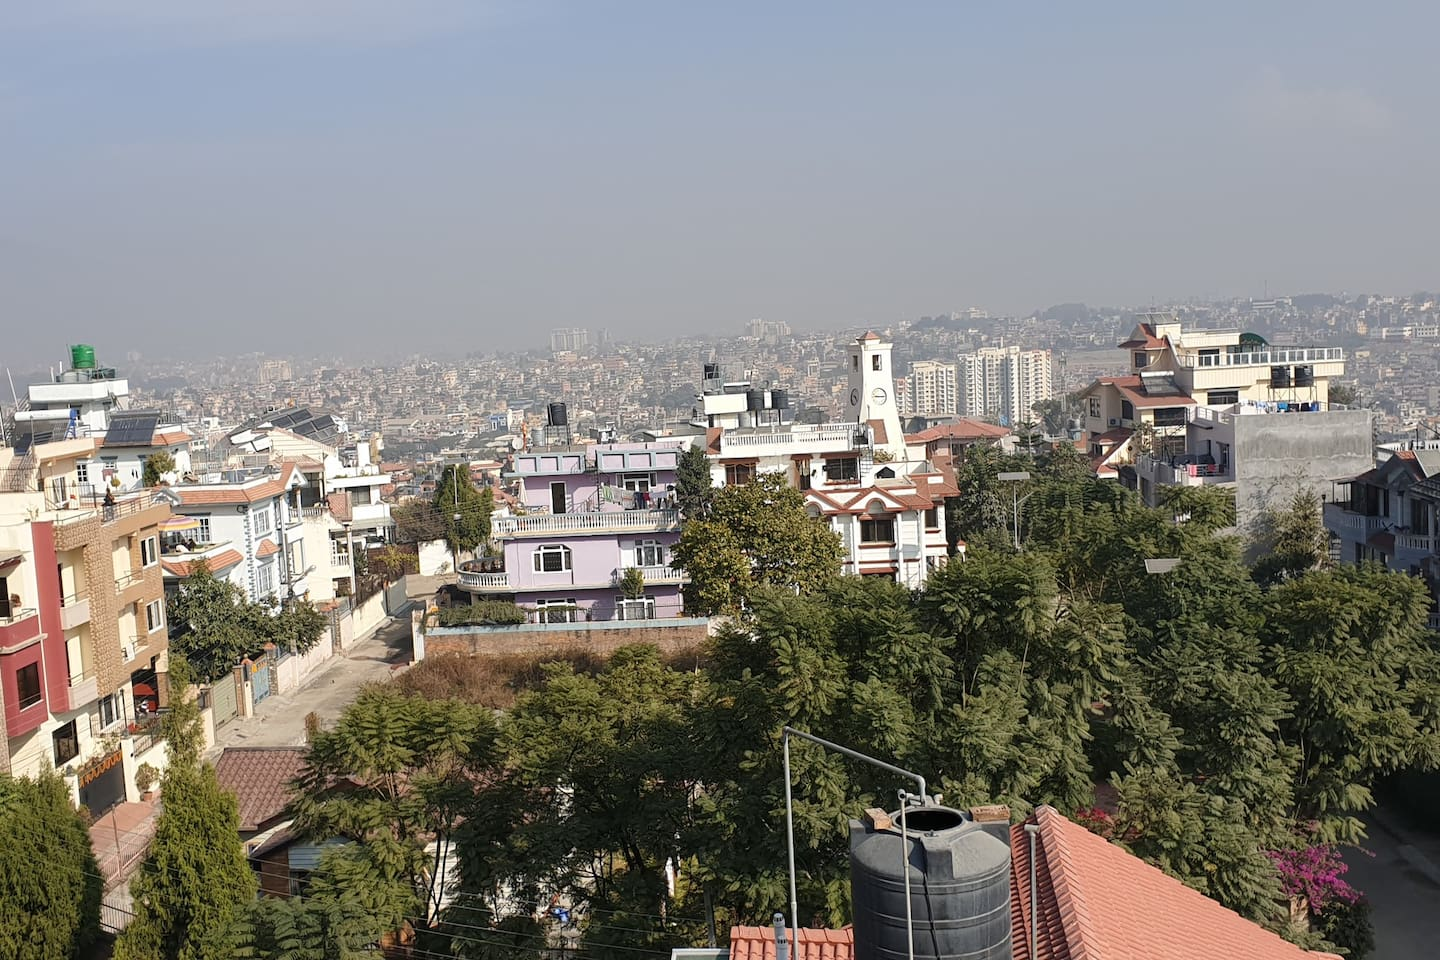 2 and half storey house with nice roof for viewing the entire kathmandu valley. Friendly family members with great hospitality and friendly atmosphere around. Good Restaurants are in close location  and nice neighborhood.